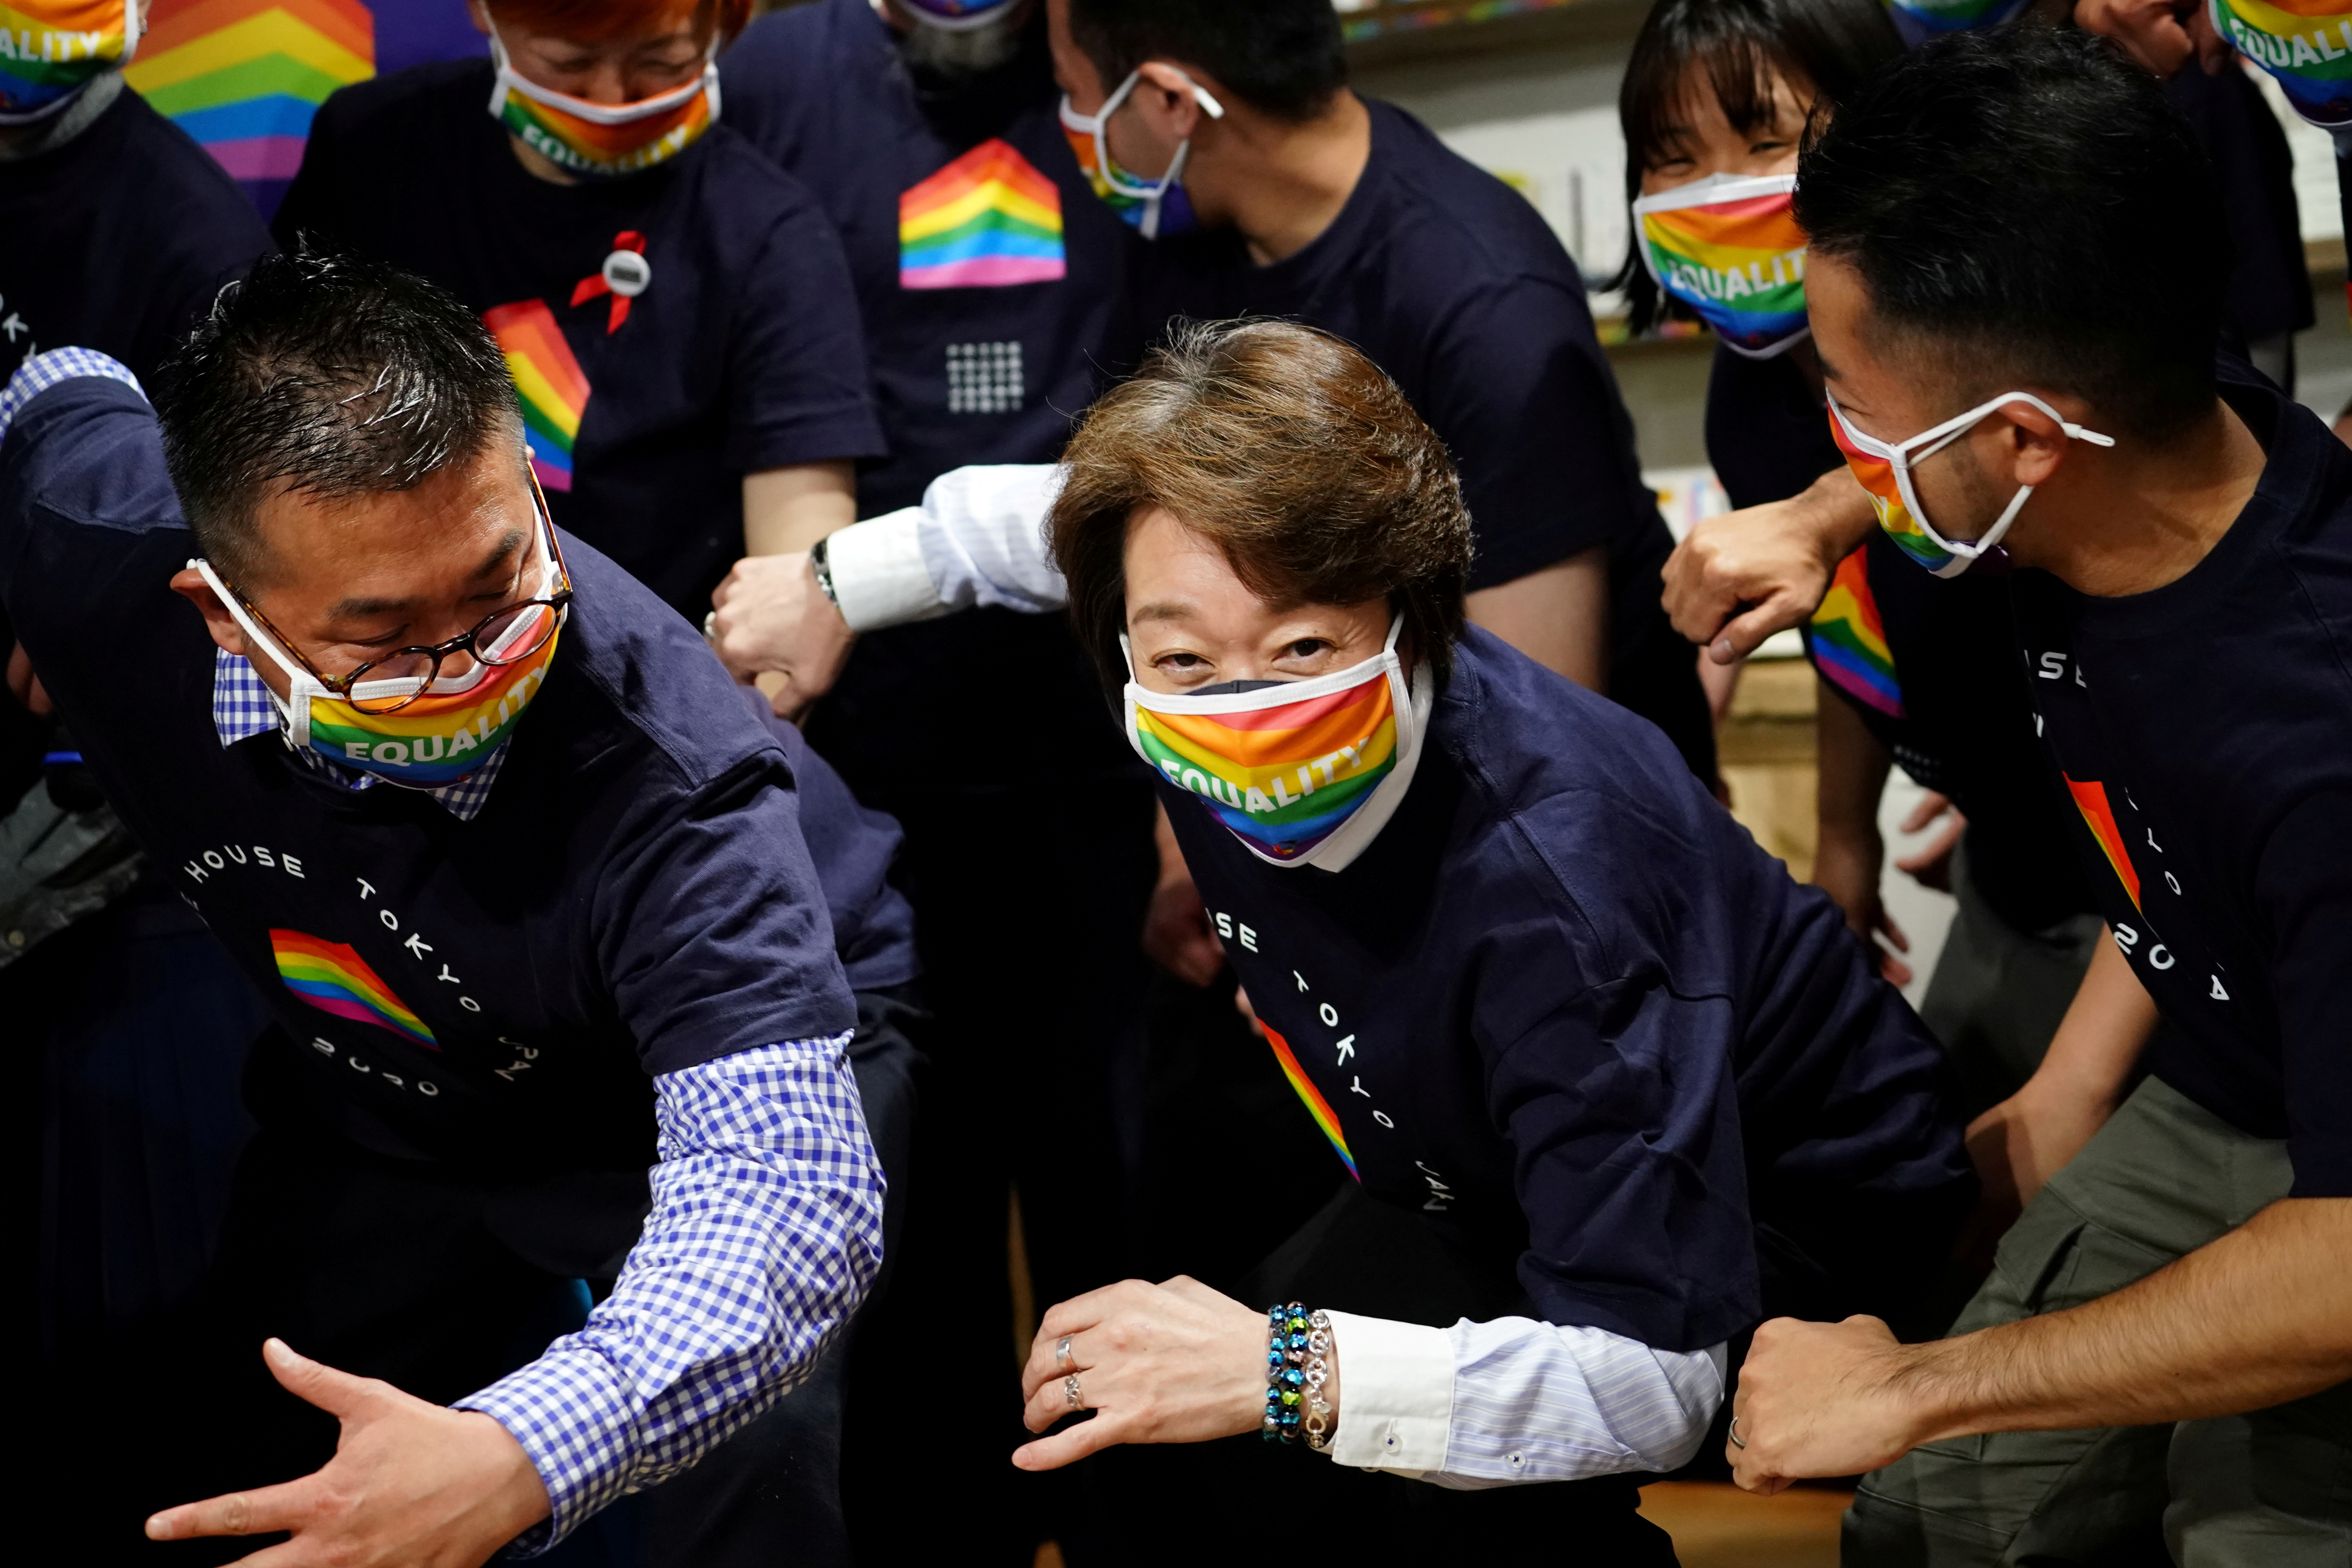 Tokyo 2020 President Seiko Hashimoto poses with representatives, staff and guests during a visit to Pride House Tokyo Legacy, in Tokyo, Japan April 27, 2021. Eugene Hoshiko/Pool via REUTERS/File Photo